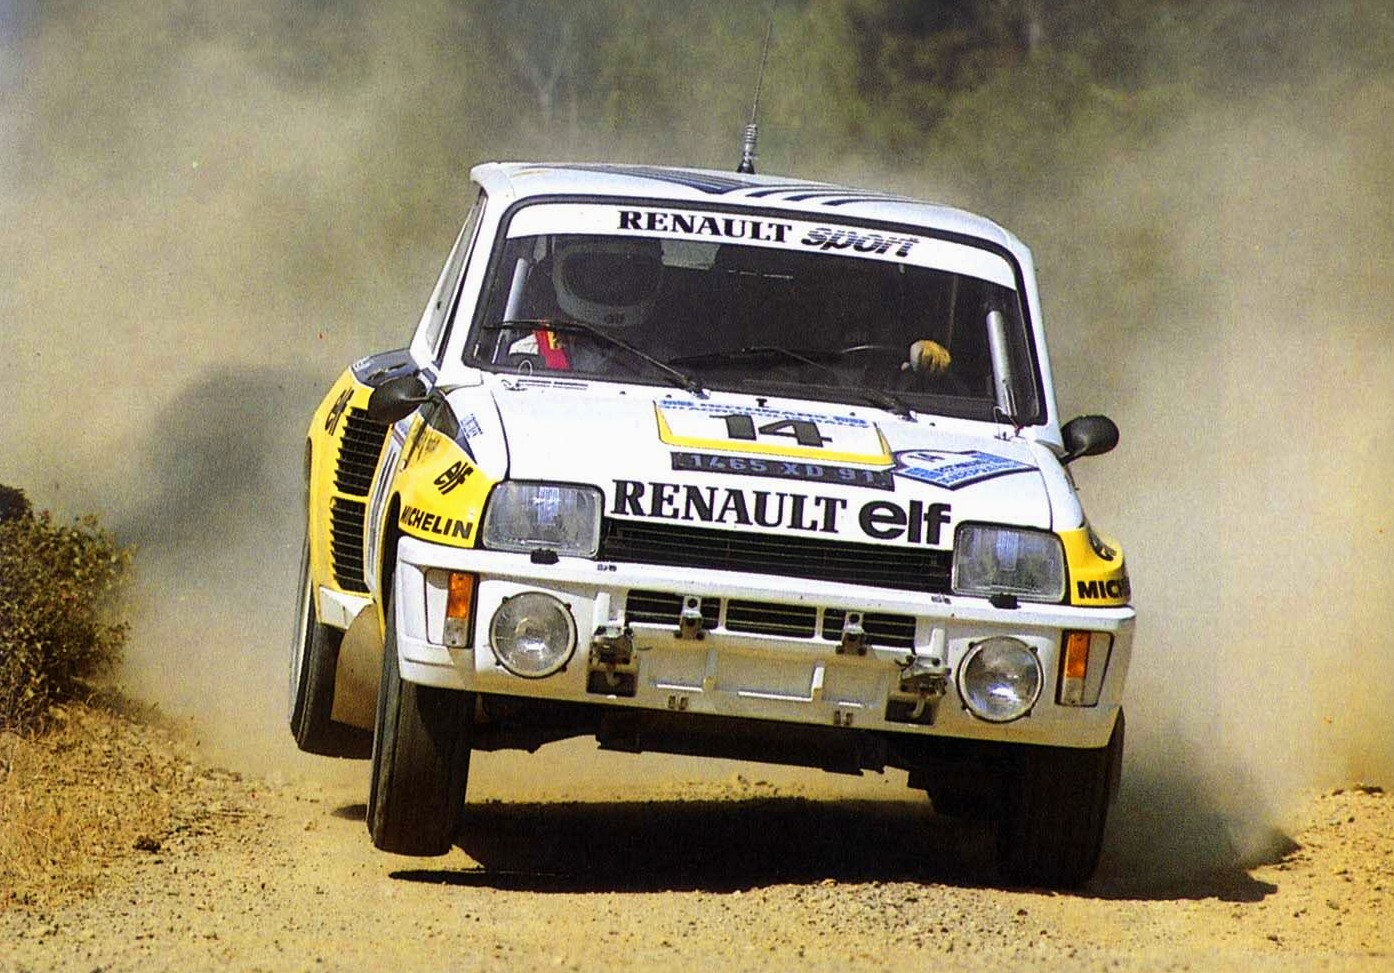 Jean Ragnotti i sin Renault 5 Turbo under Akropolis rally i 1983.